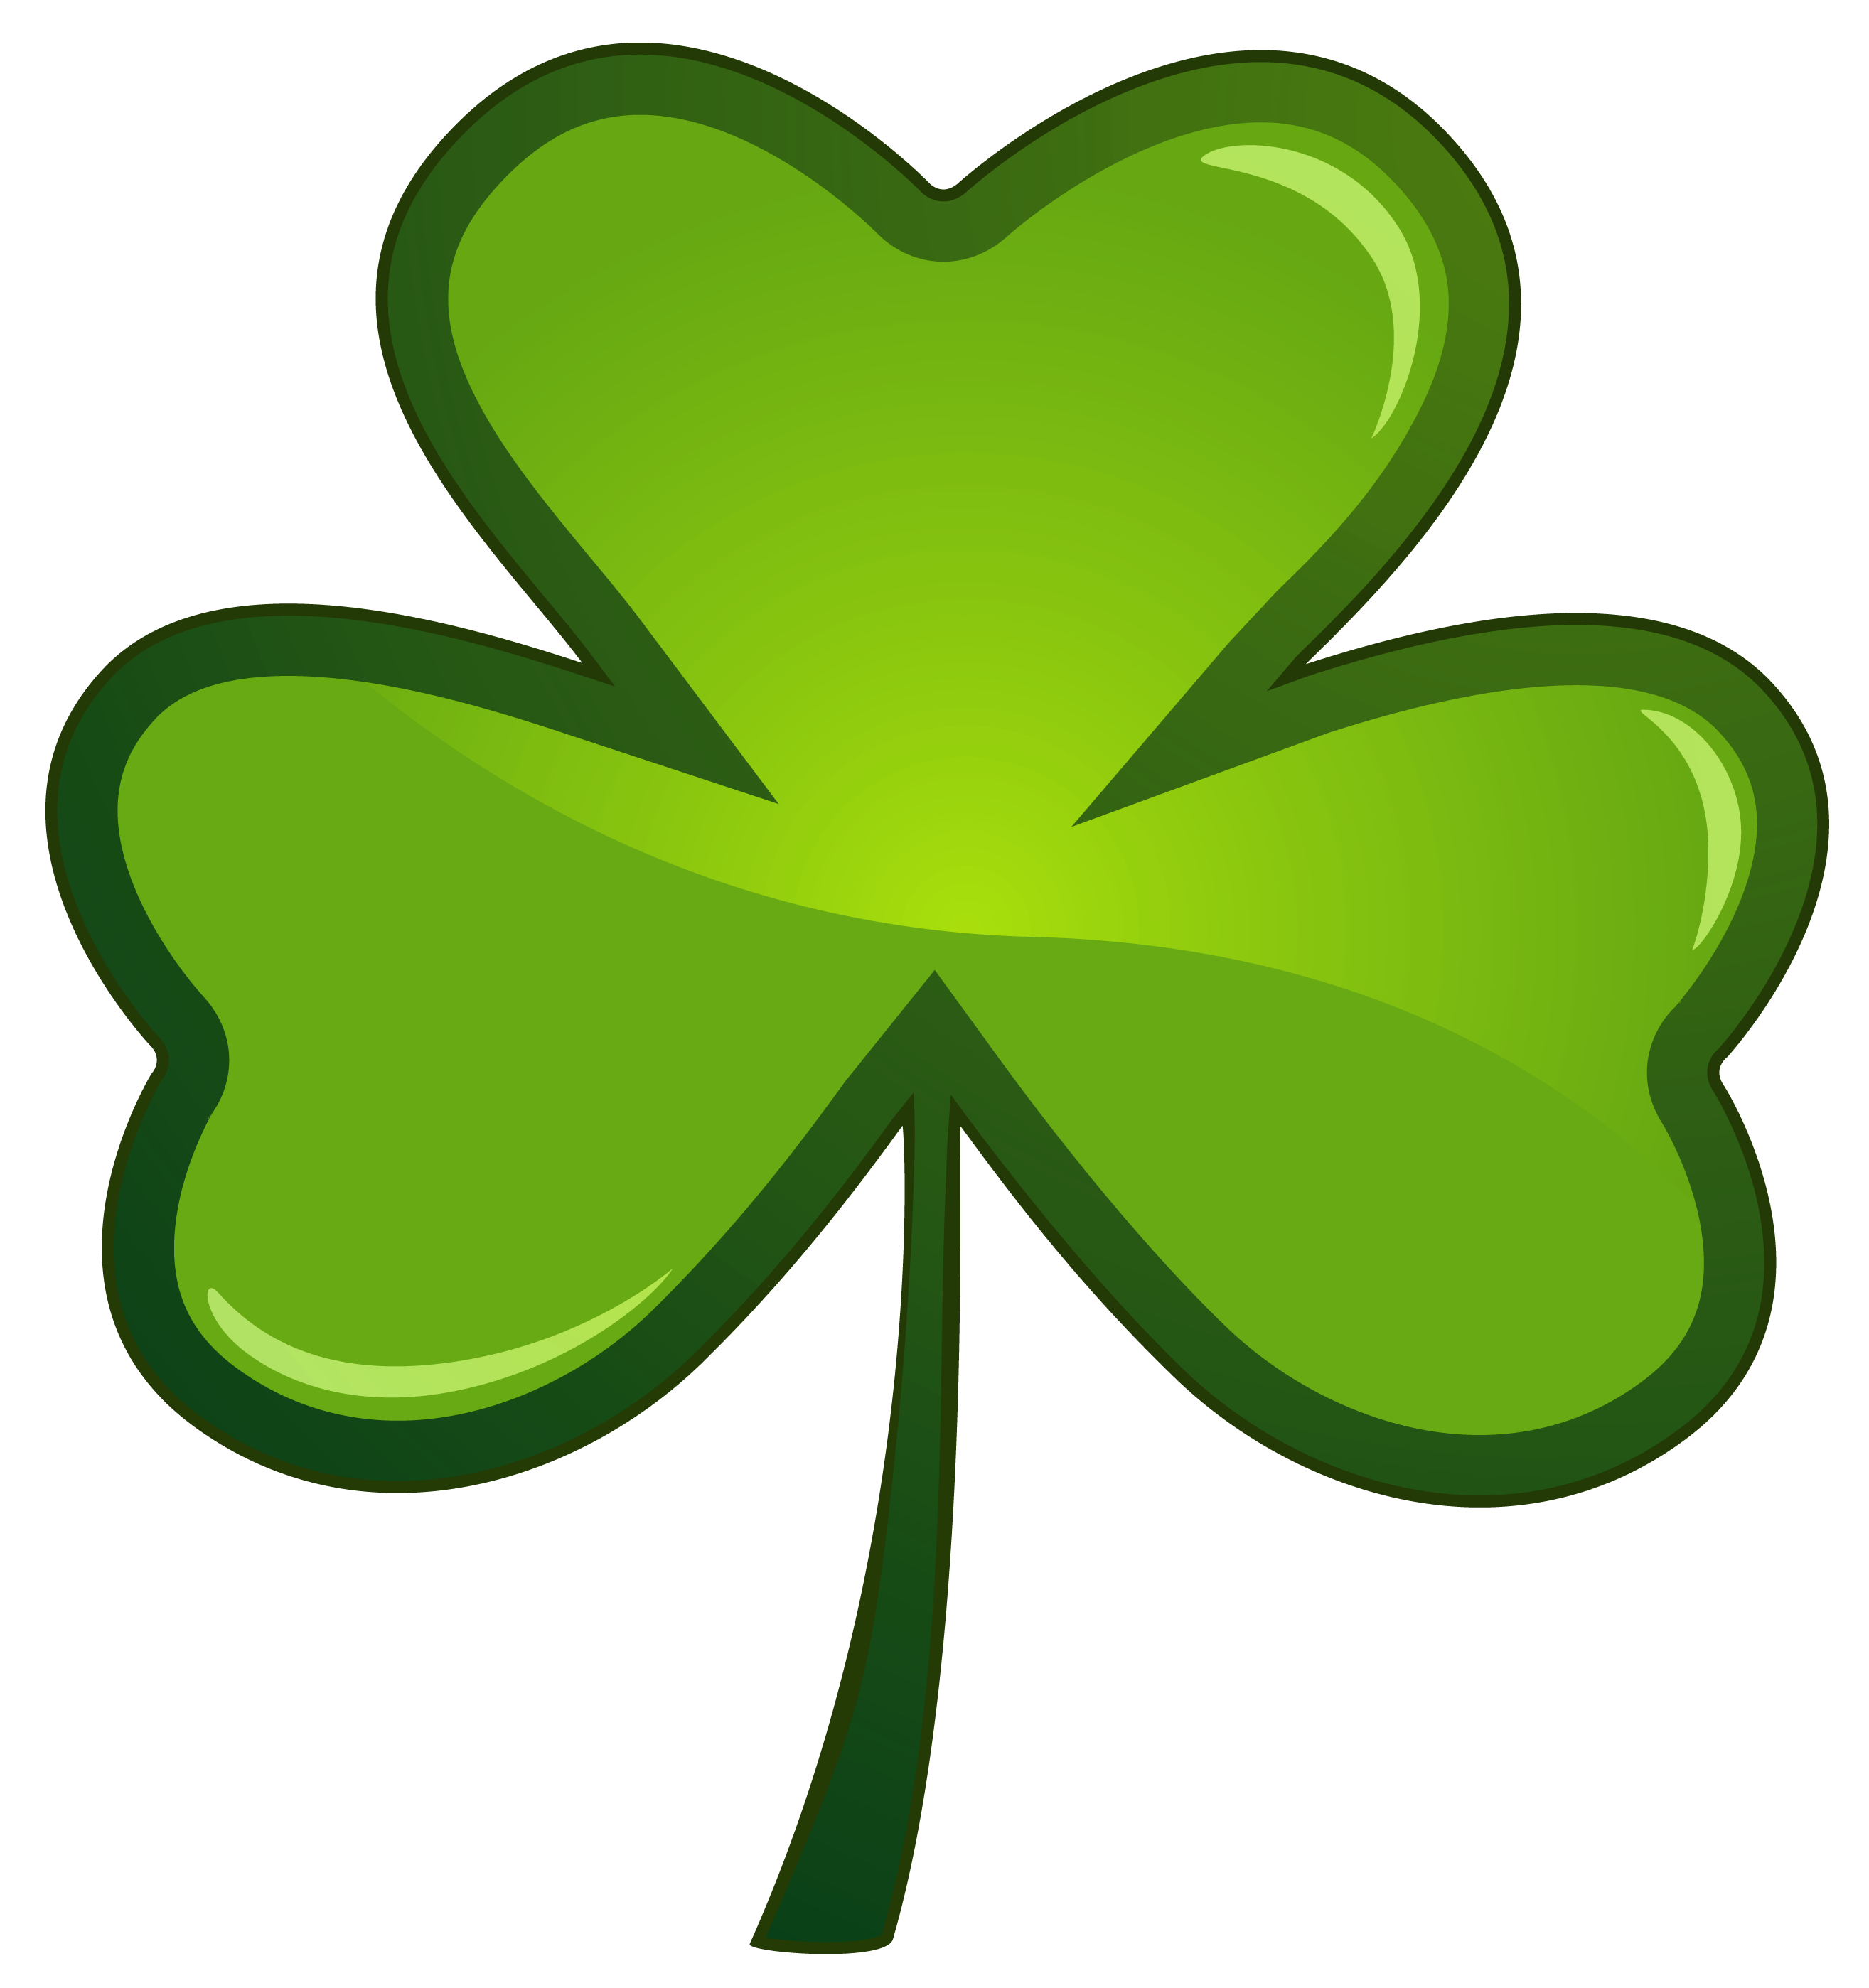 png stock Crammed free patricks day. St patrick clipart